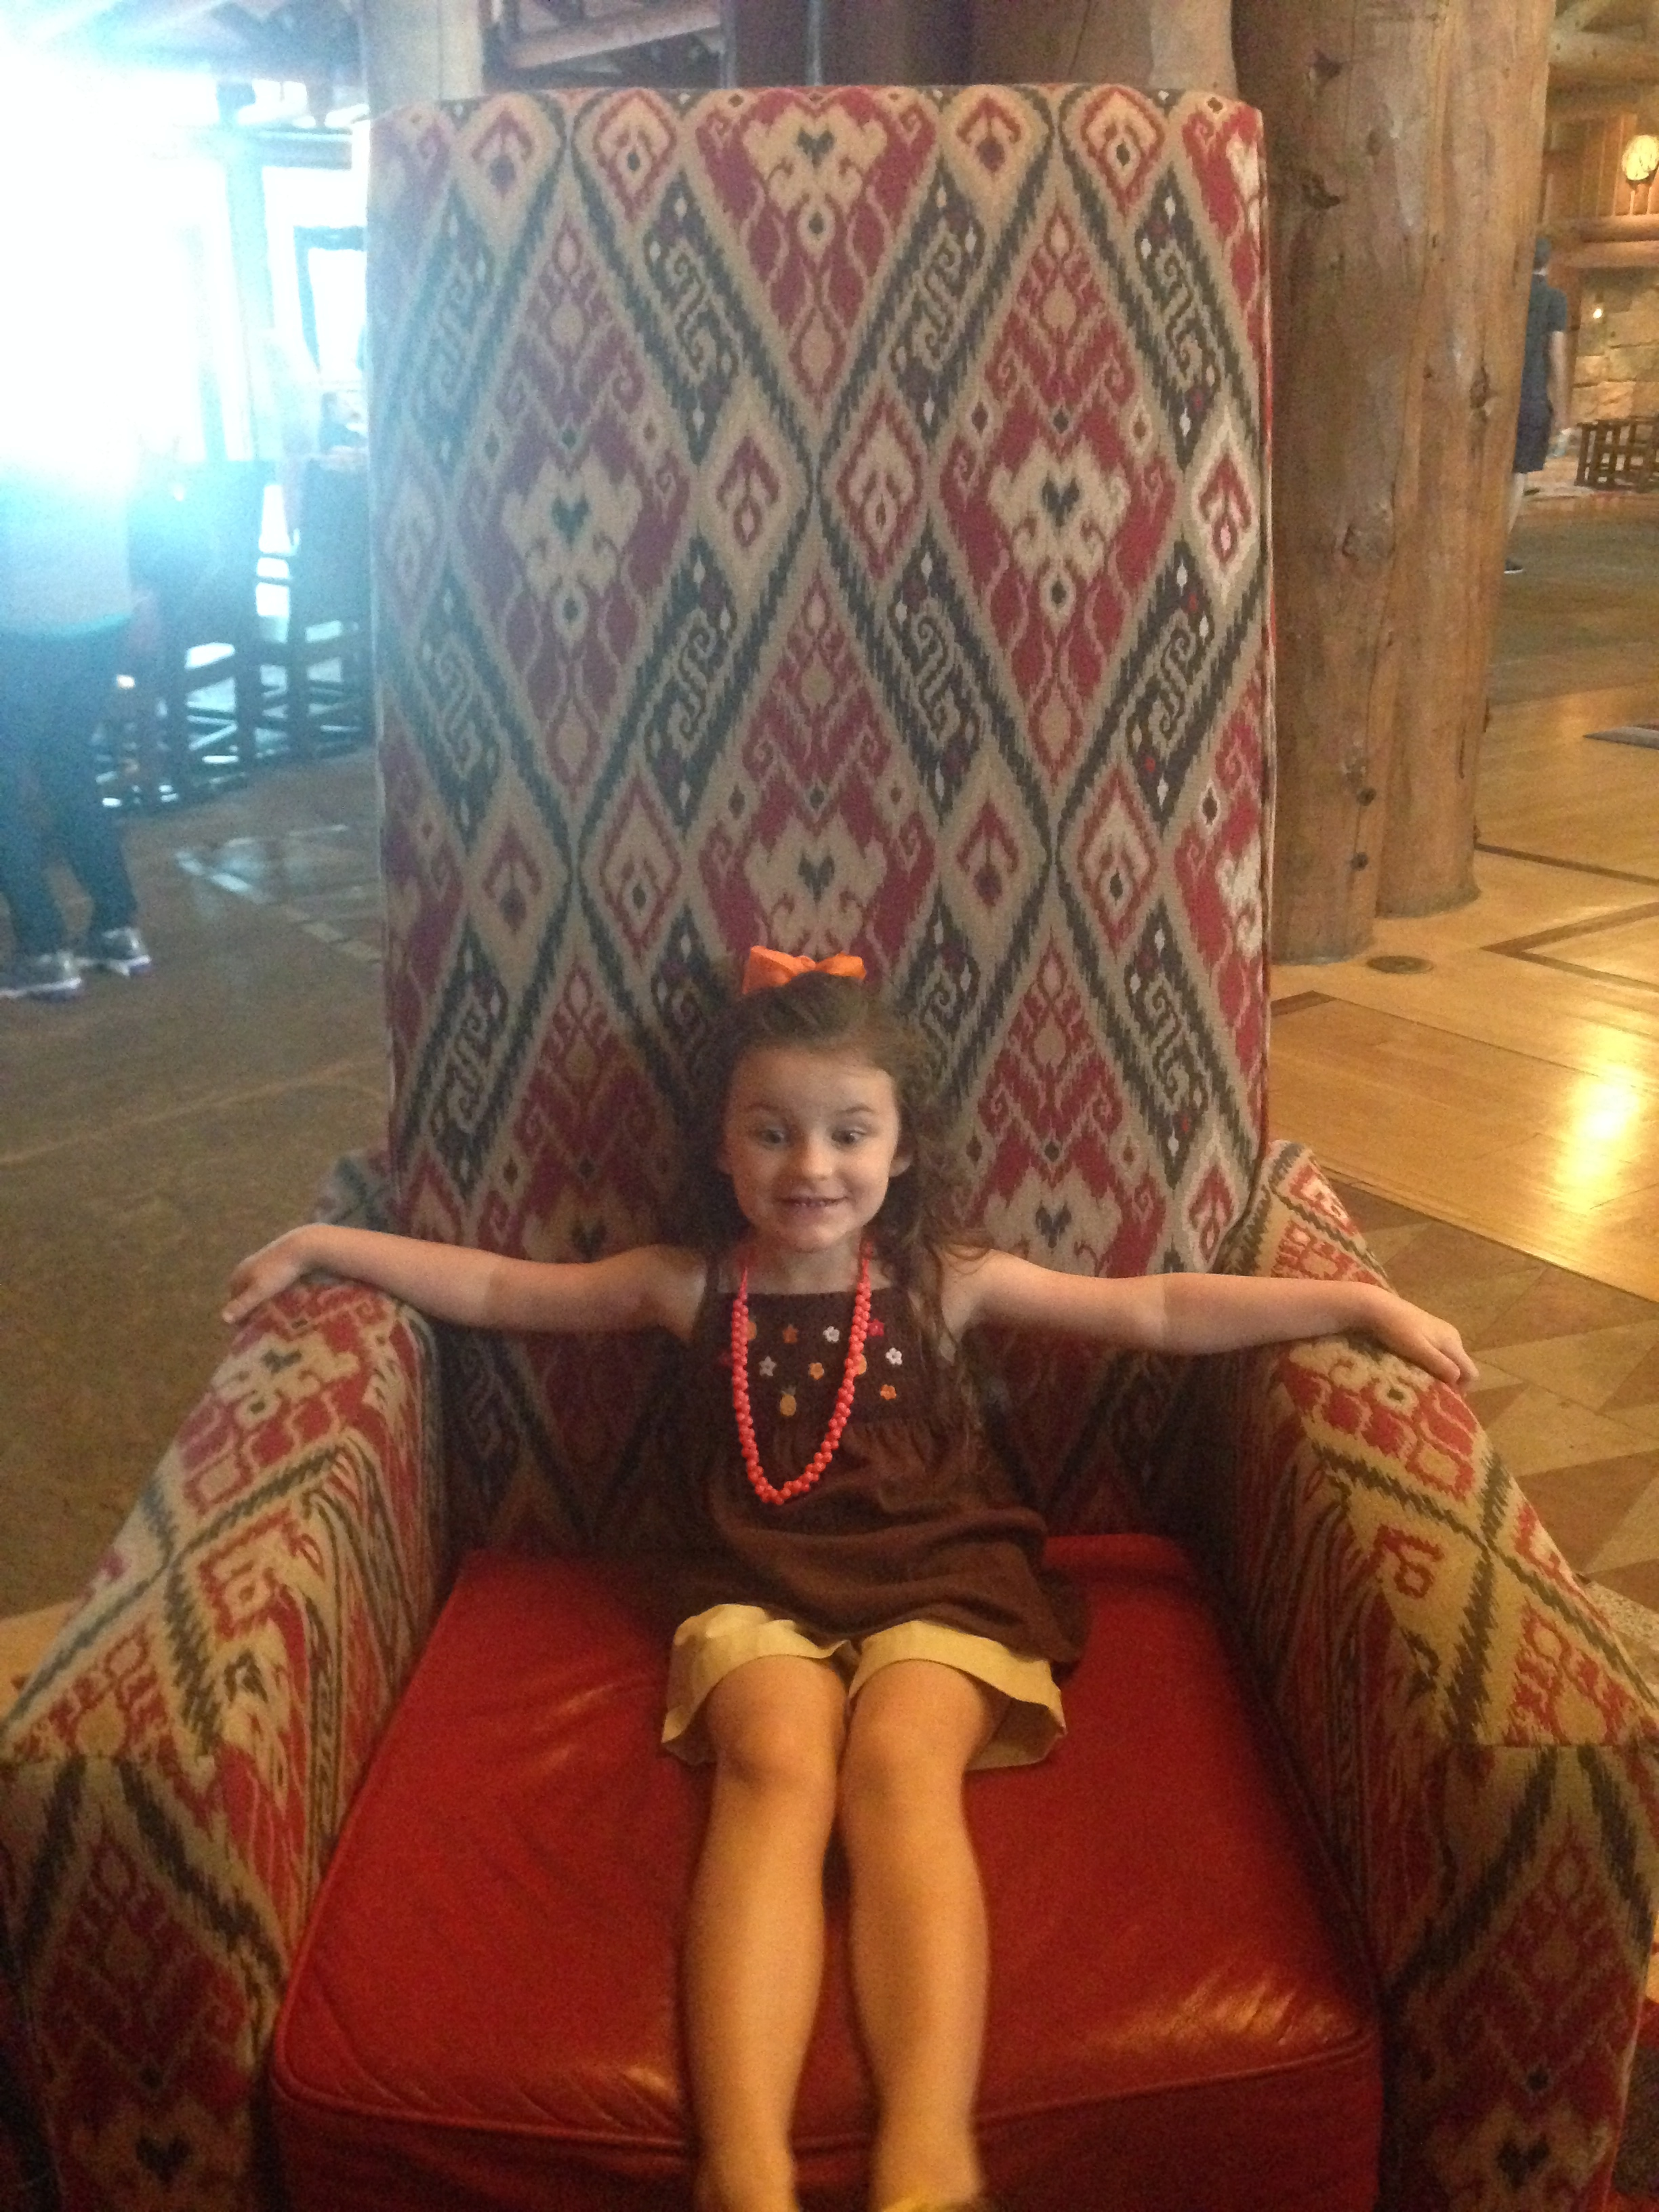 Huge chairs in the lobby!